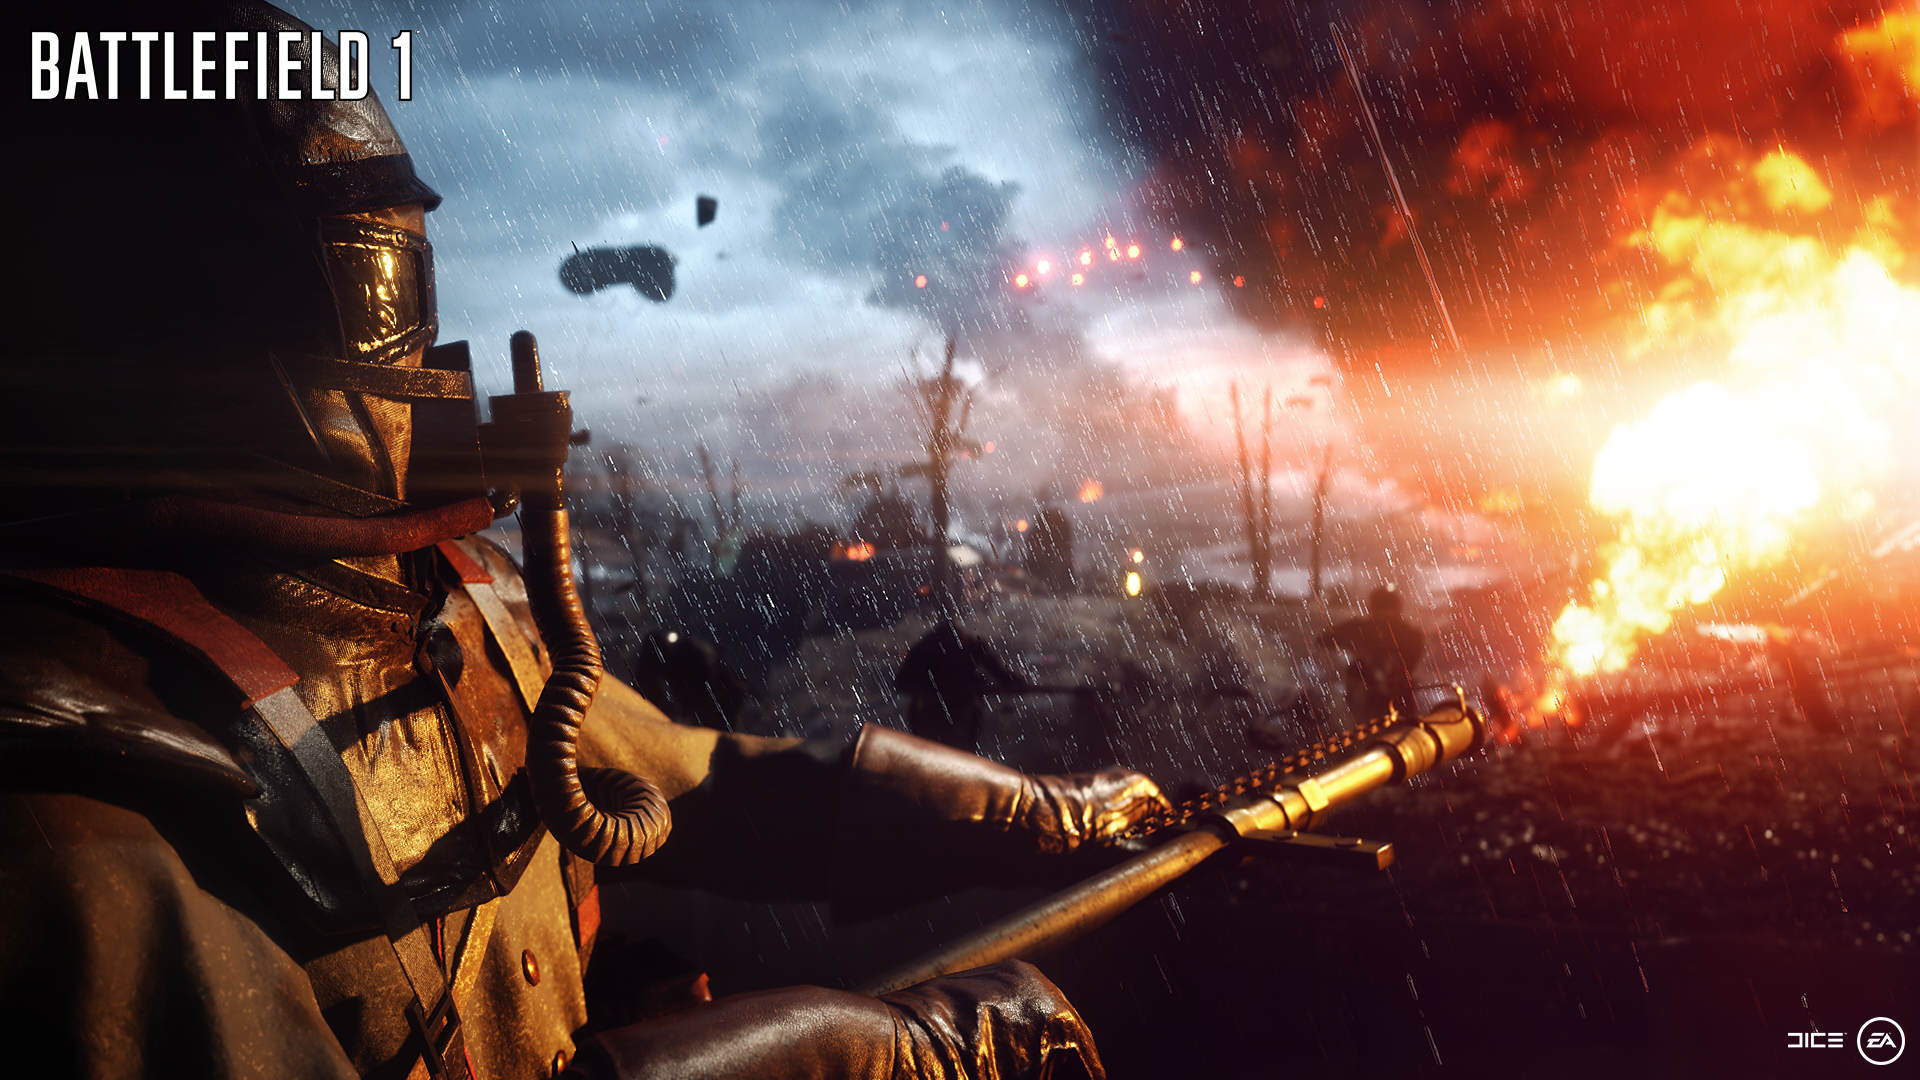 How To Get Early Access To The Battlefield 1 Beta battlefield1 reveal 03 1